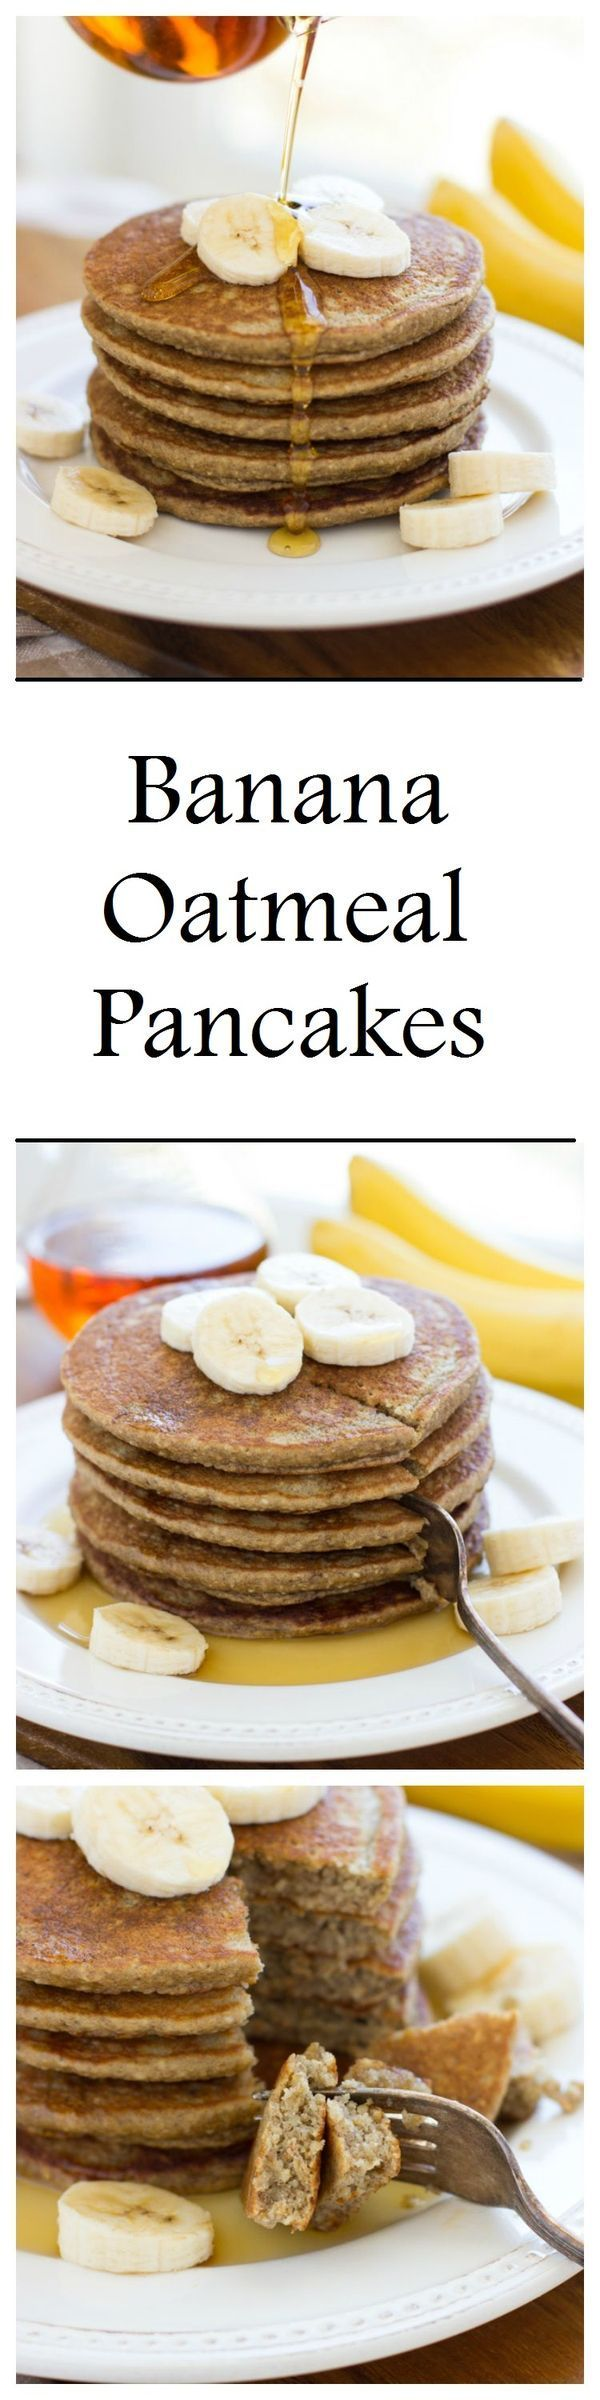 Banana Oatmeal Pancakes that are light, fluffy and refined sugar-free! They're made easy in a blender and are also gluten-free and dairy-free. (Pancake Muffin With Syrup)